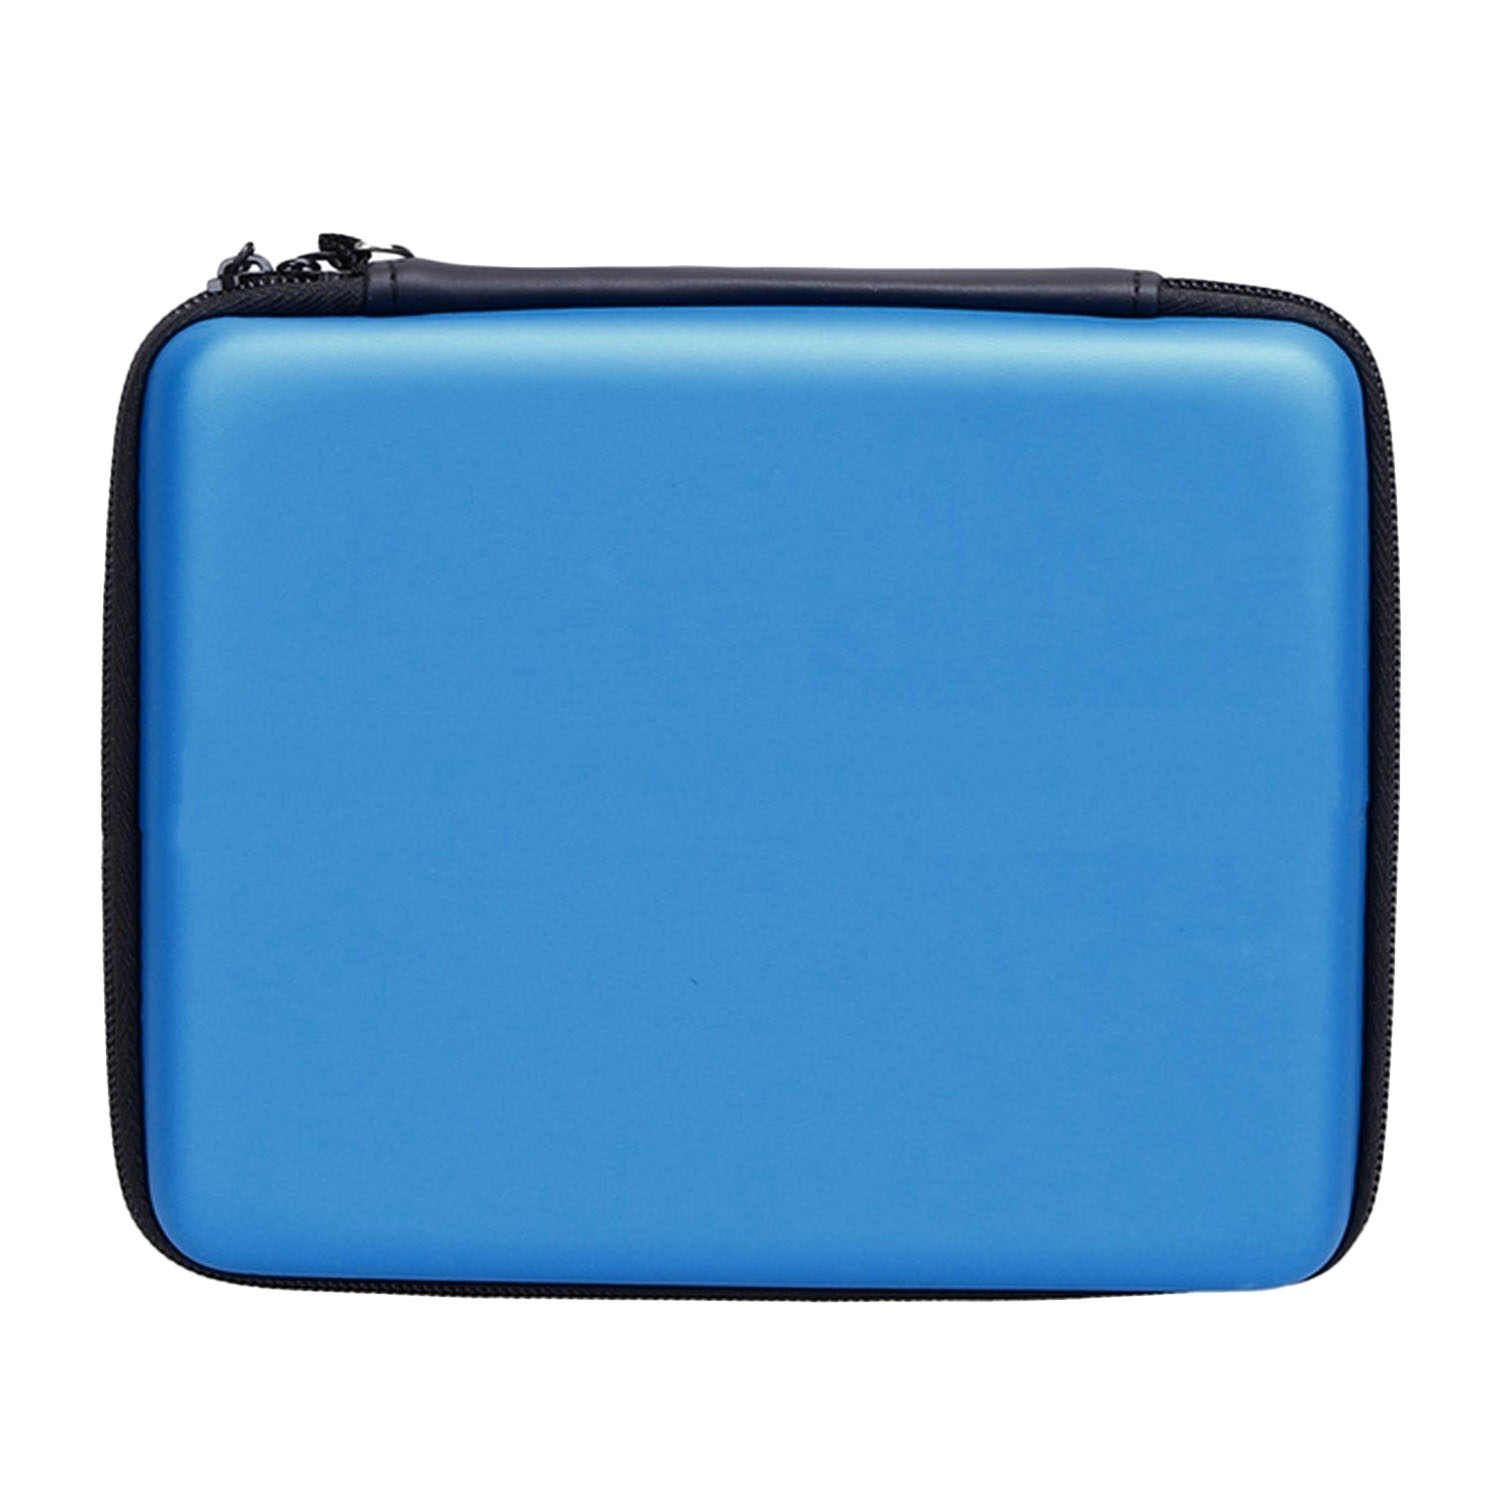 Portable Hard Shell Anti-shock Pelindung Penyimpanan Travel Hand Bag Case Holder dengan Carrying Strap untuk Nintendo 2DS Konsol Biru-Intl